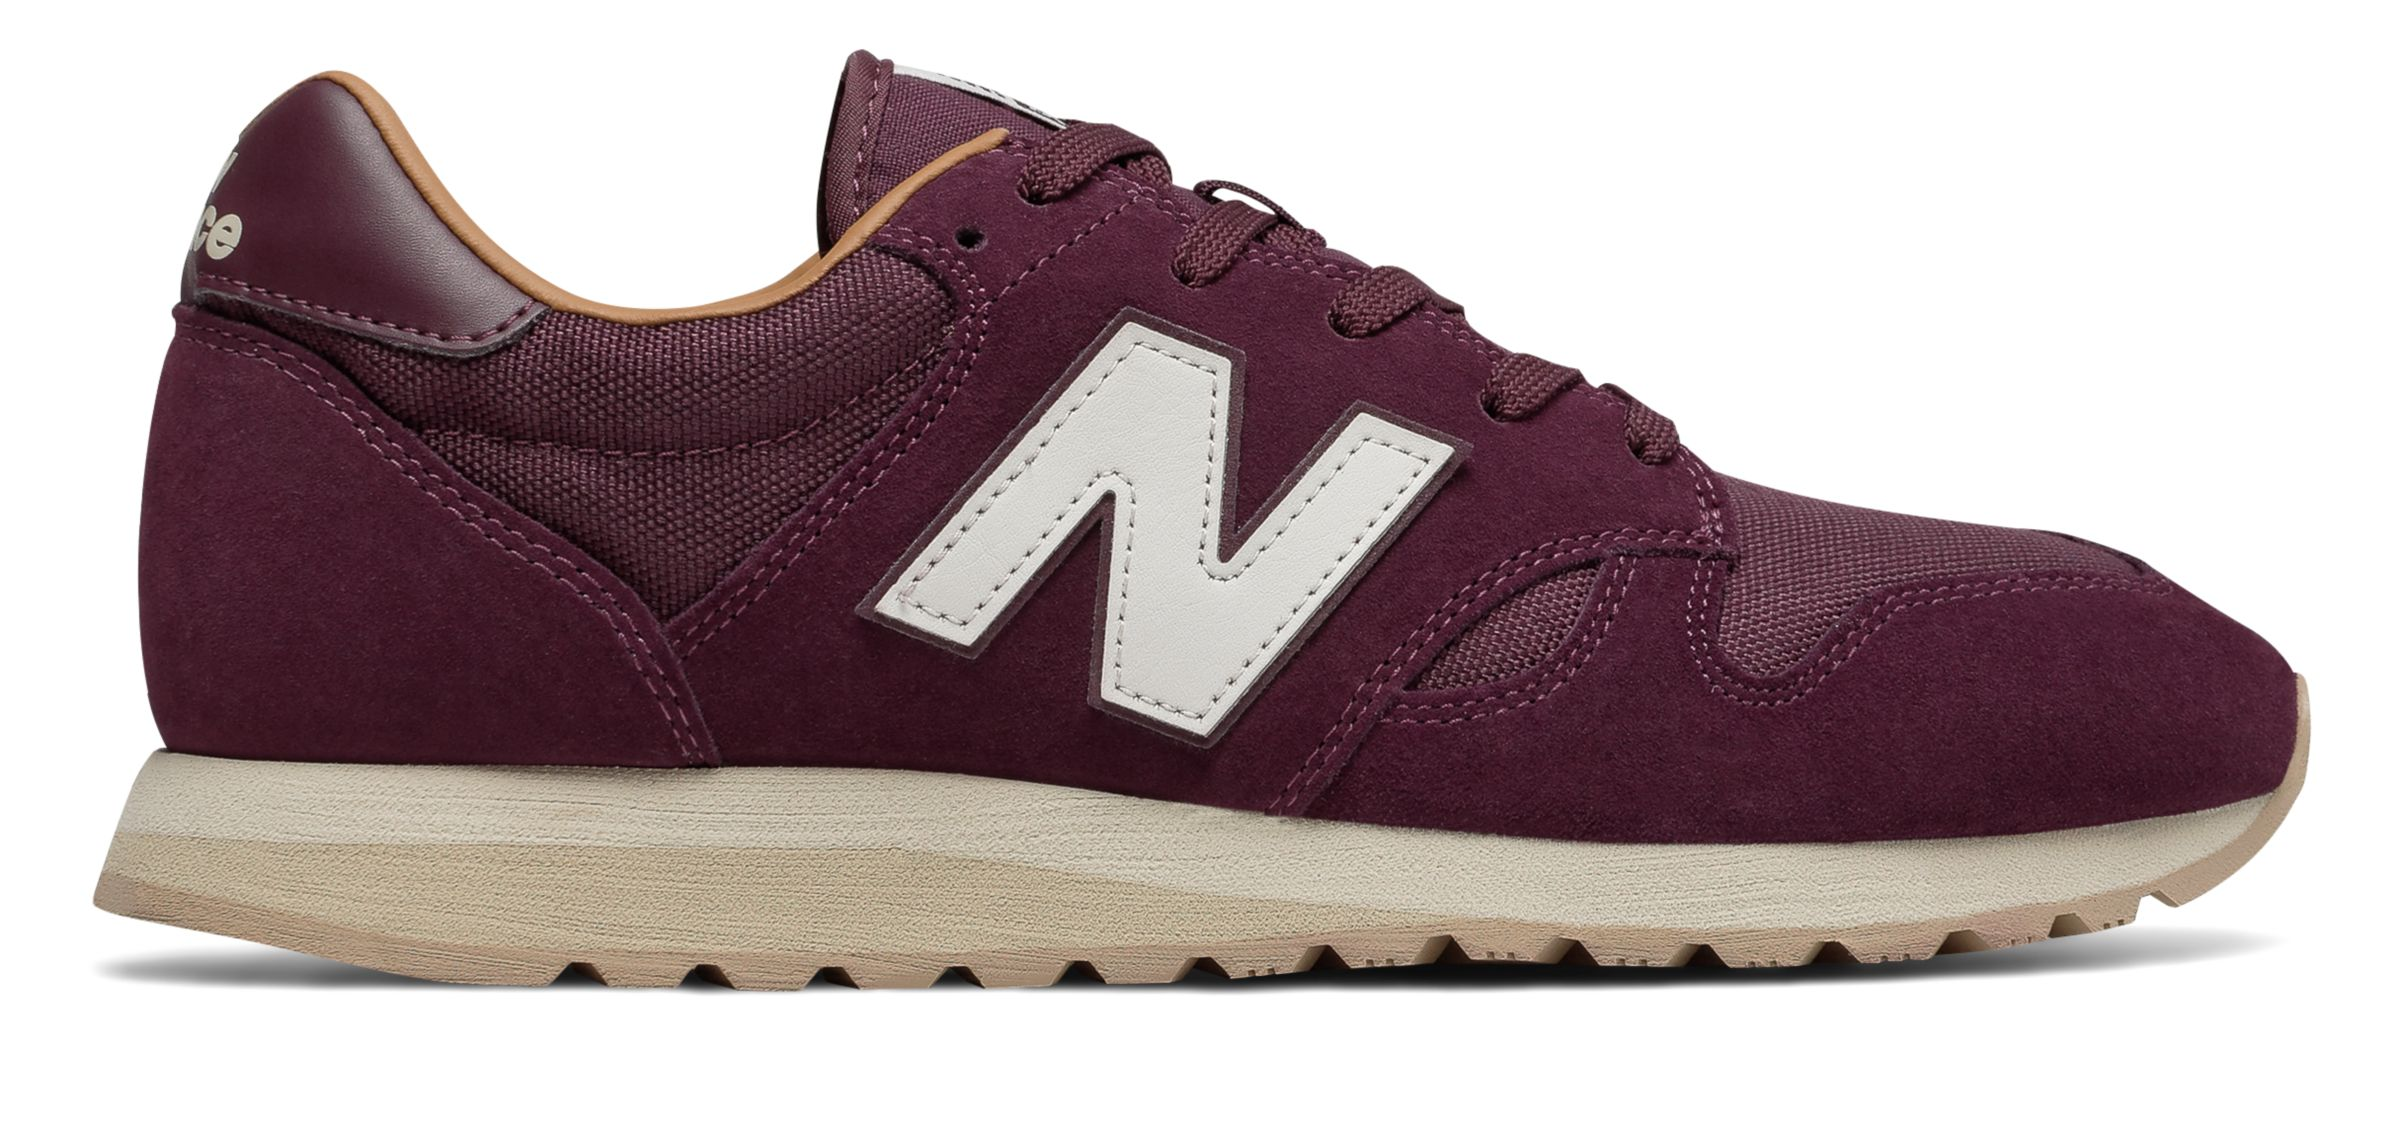 Details about New Balance Unisex Unisex 520 Adult Lifestyle Shoes Stylish Red With Brown